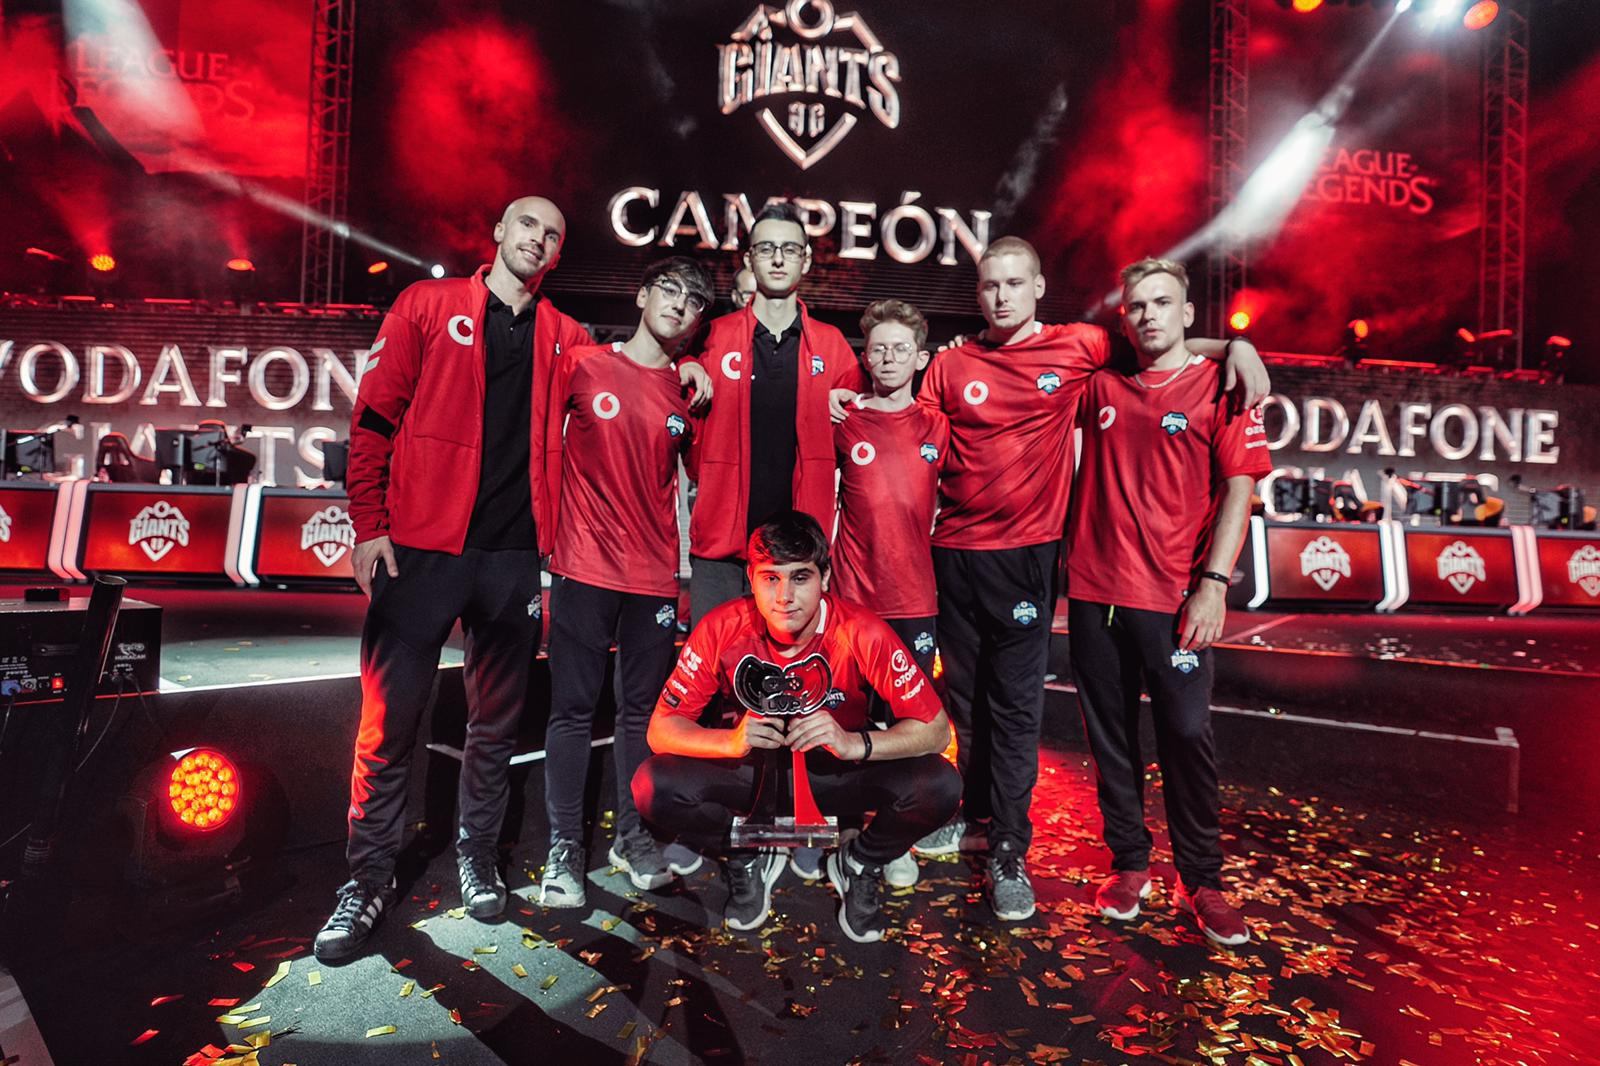 Vodafone Giants, campeón de la Superliga Orange de League of Legends